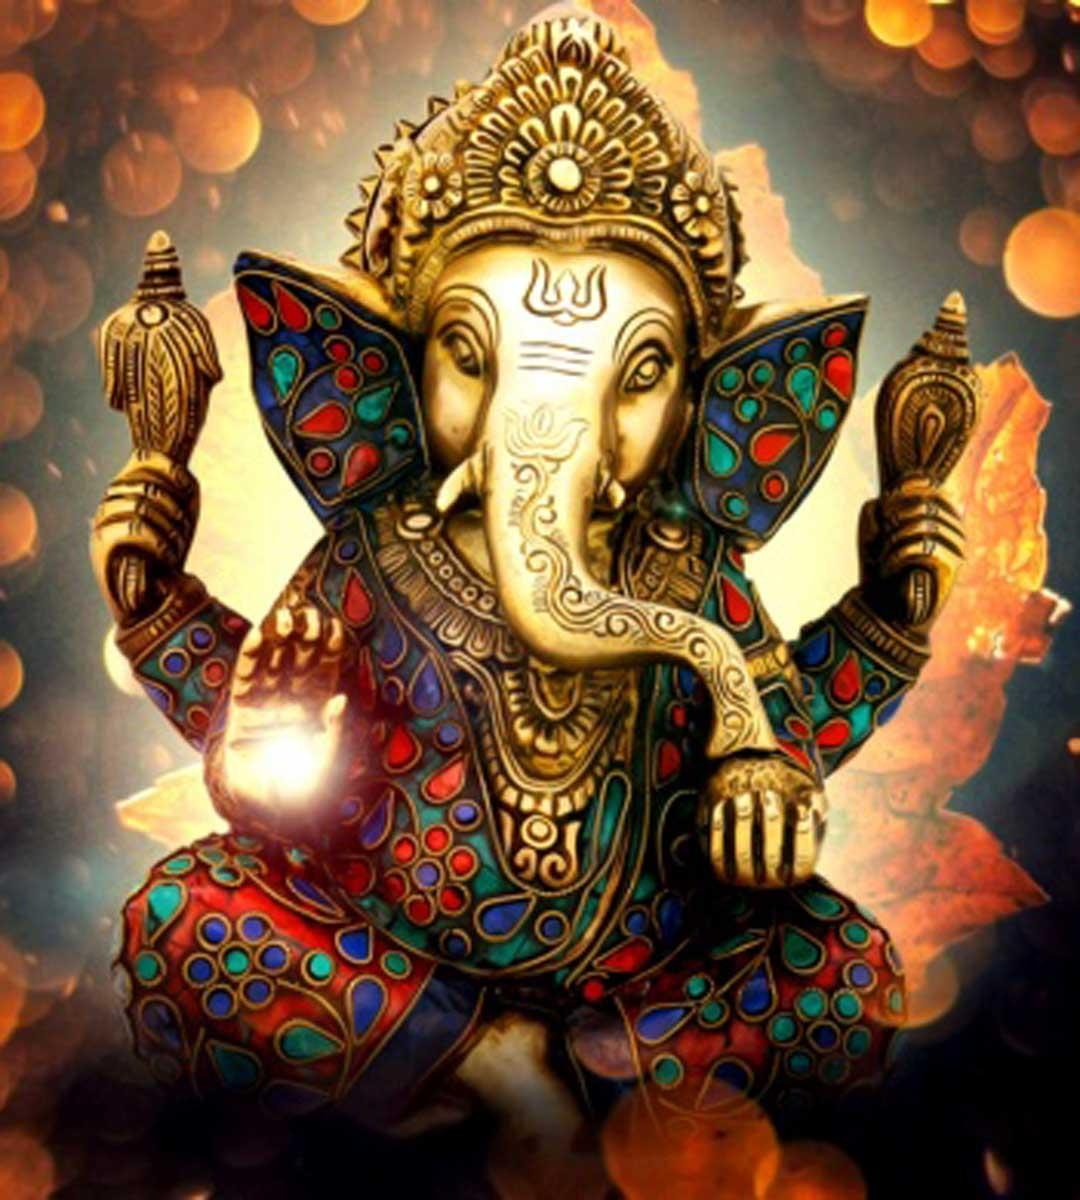 God Vinayagar Wallpapers Free Download Psy Ganesha 320x380 Download Hd Wallpaper Wallpapertip